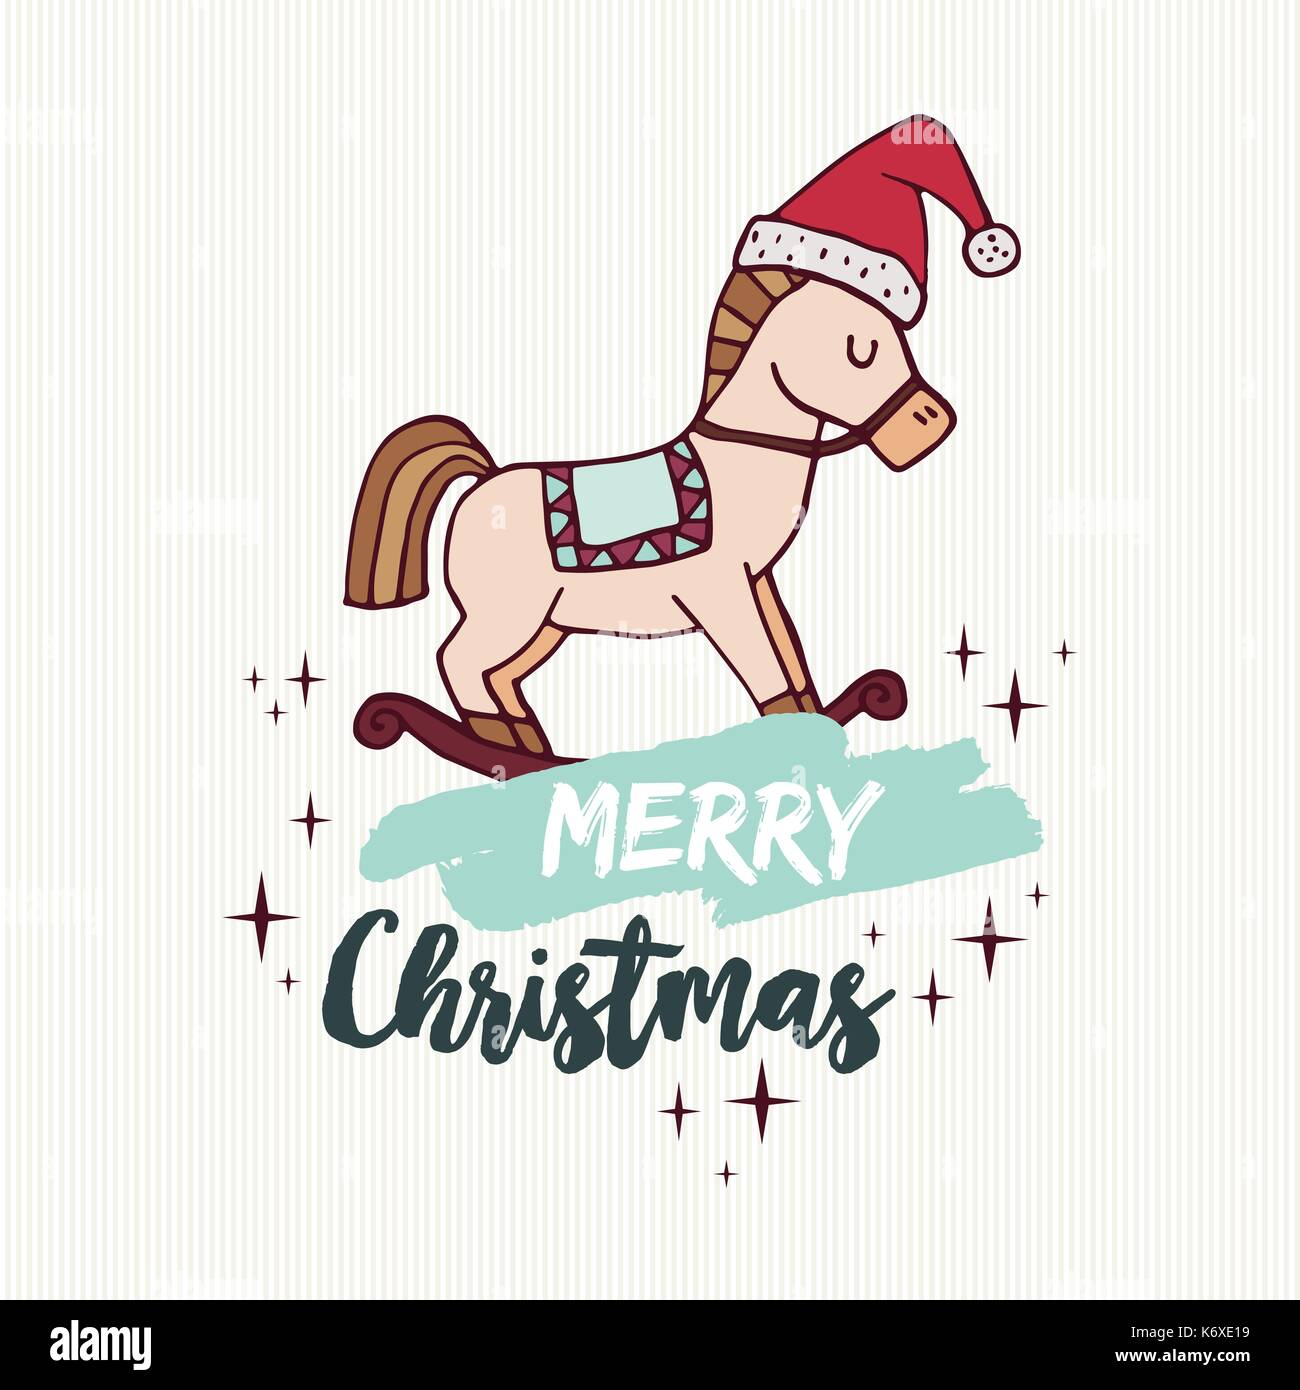 Merry christmas hand drawn greeting card cute rocking horse toy in merry christmas hand drawn greeting card cute rocking horse toy in santa claus hat kristyandbryce Gallery